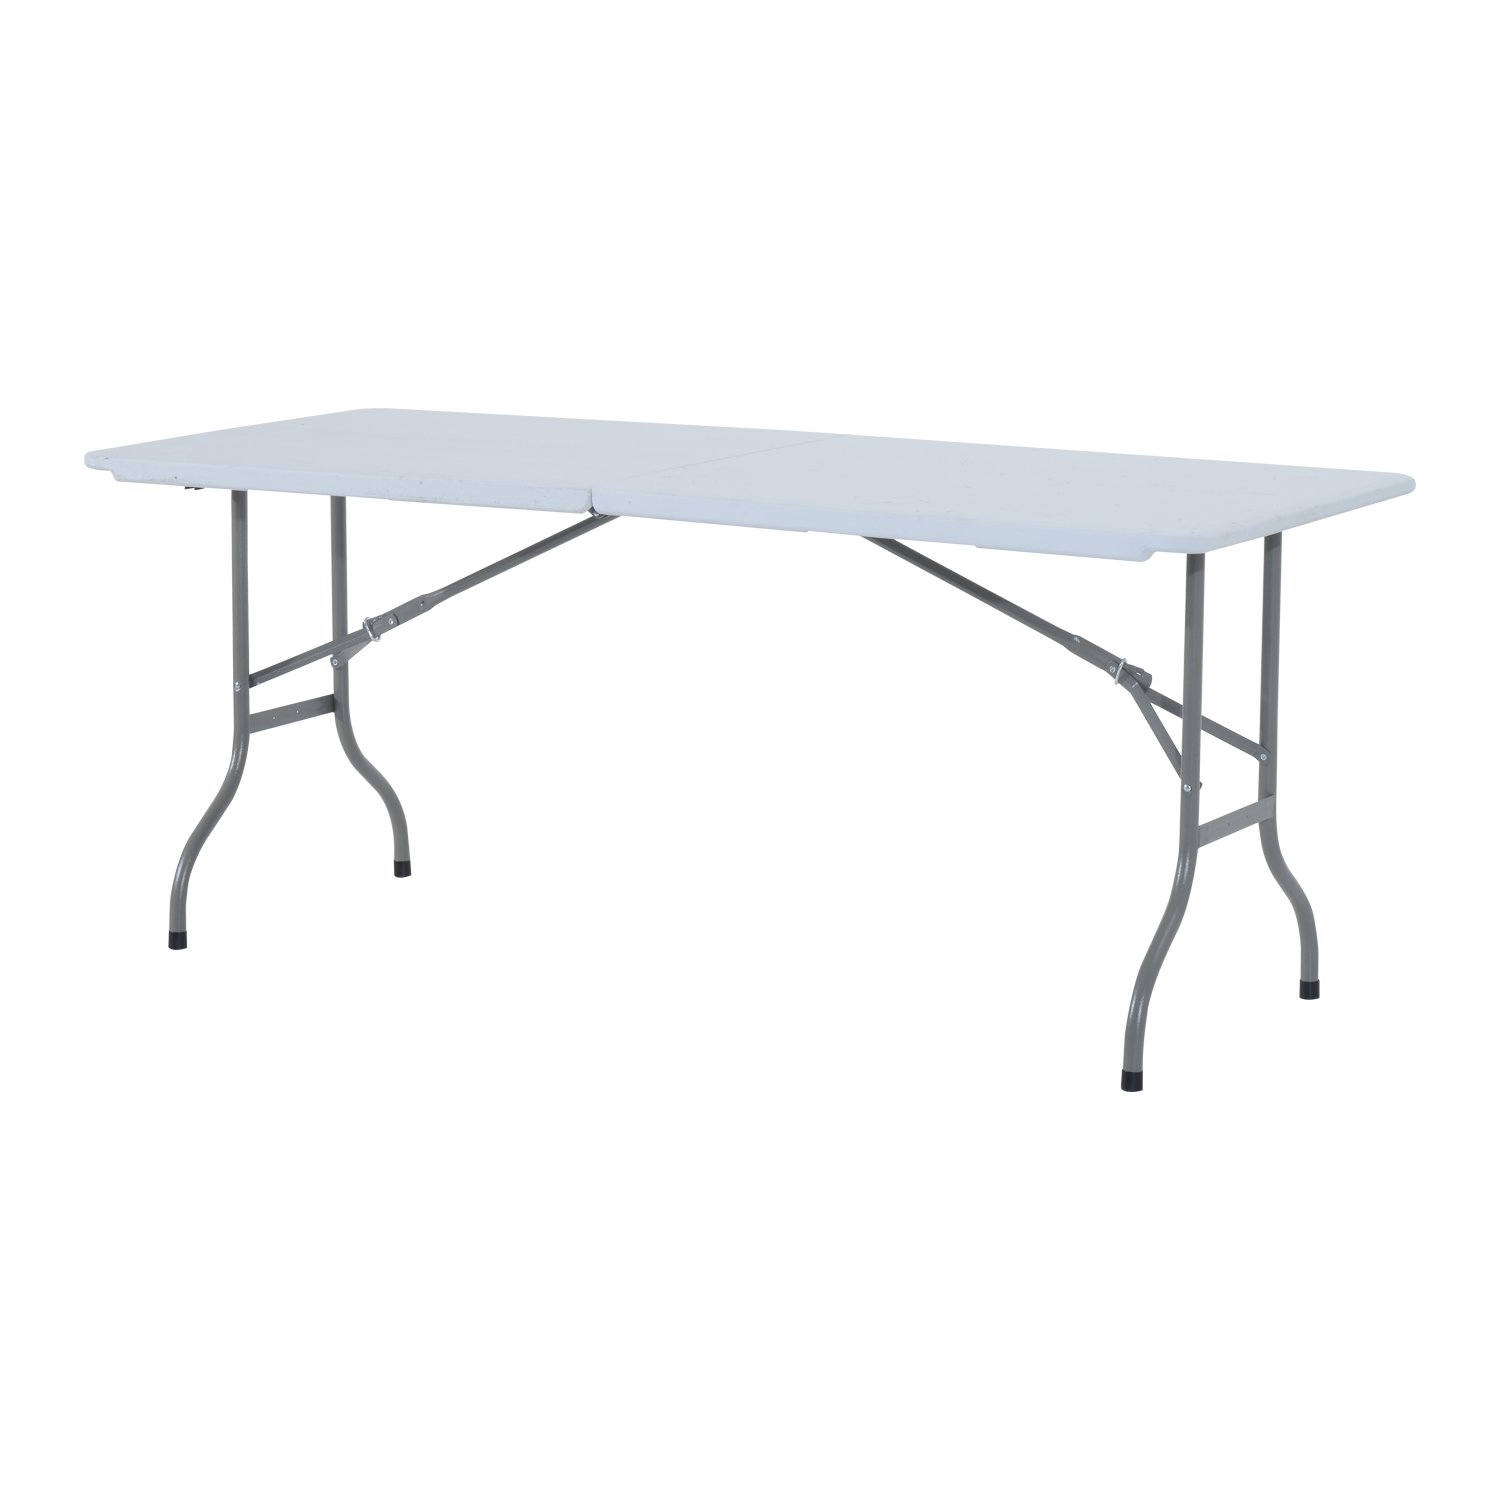 Outsunny 1.8 m Outdoor Garden Heavy Duty Portable Camping Party Dining Foldable Table - White/Grey MHSTAR UK 84B-008